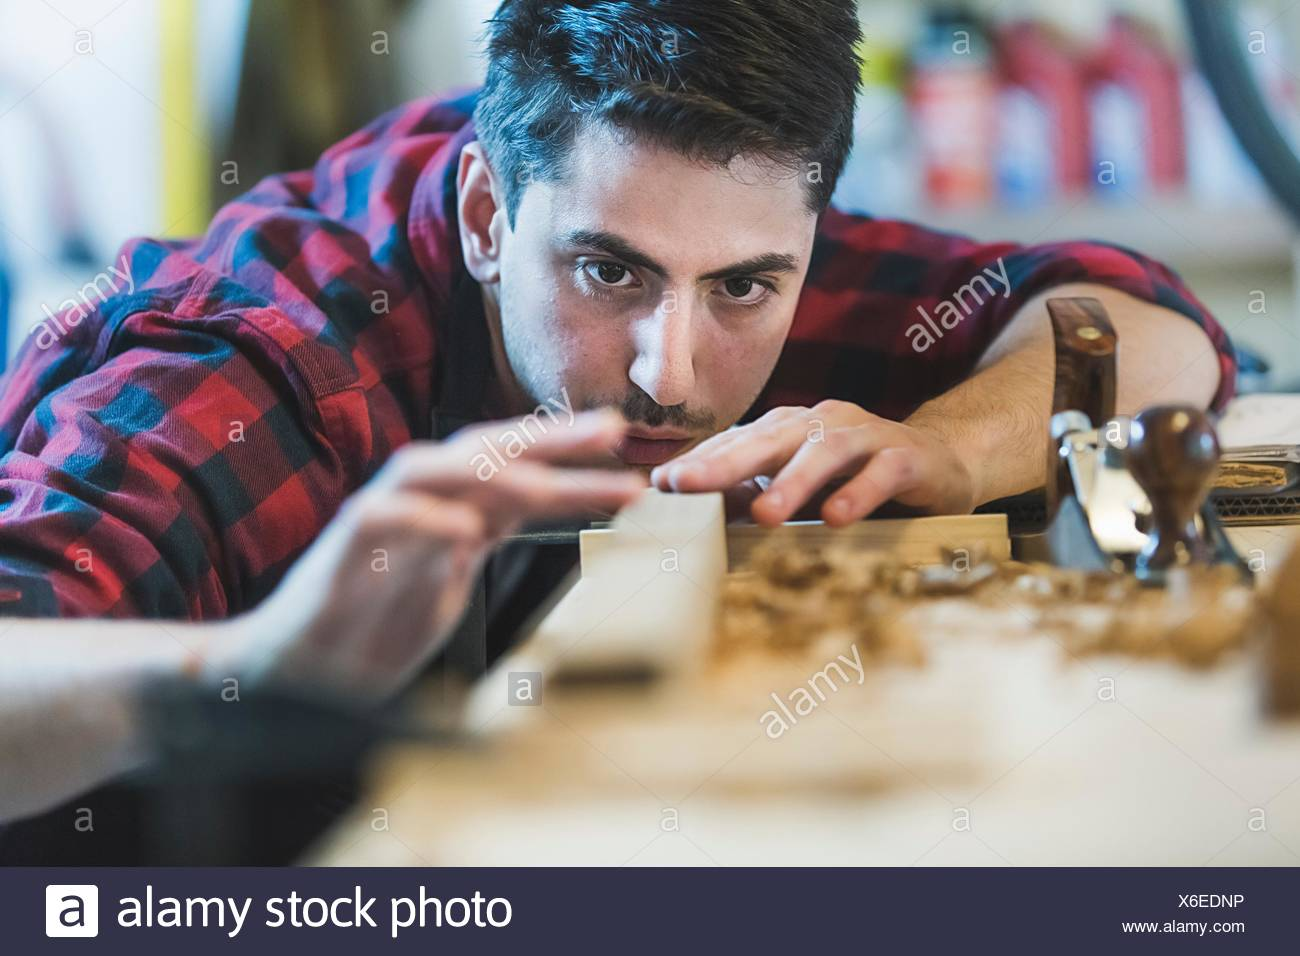 Young man using wood plane to smooth wood object - Stock Image